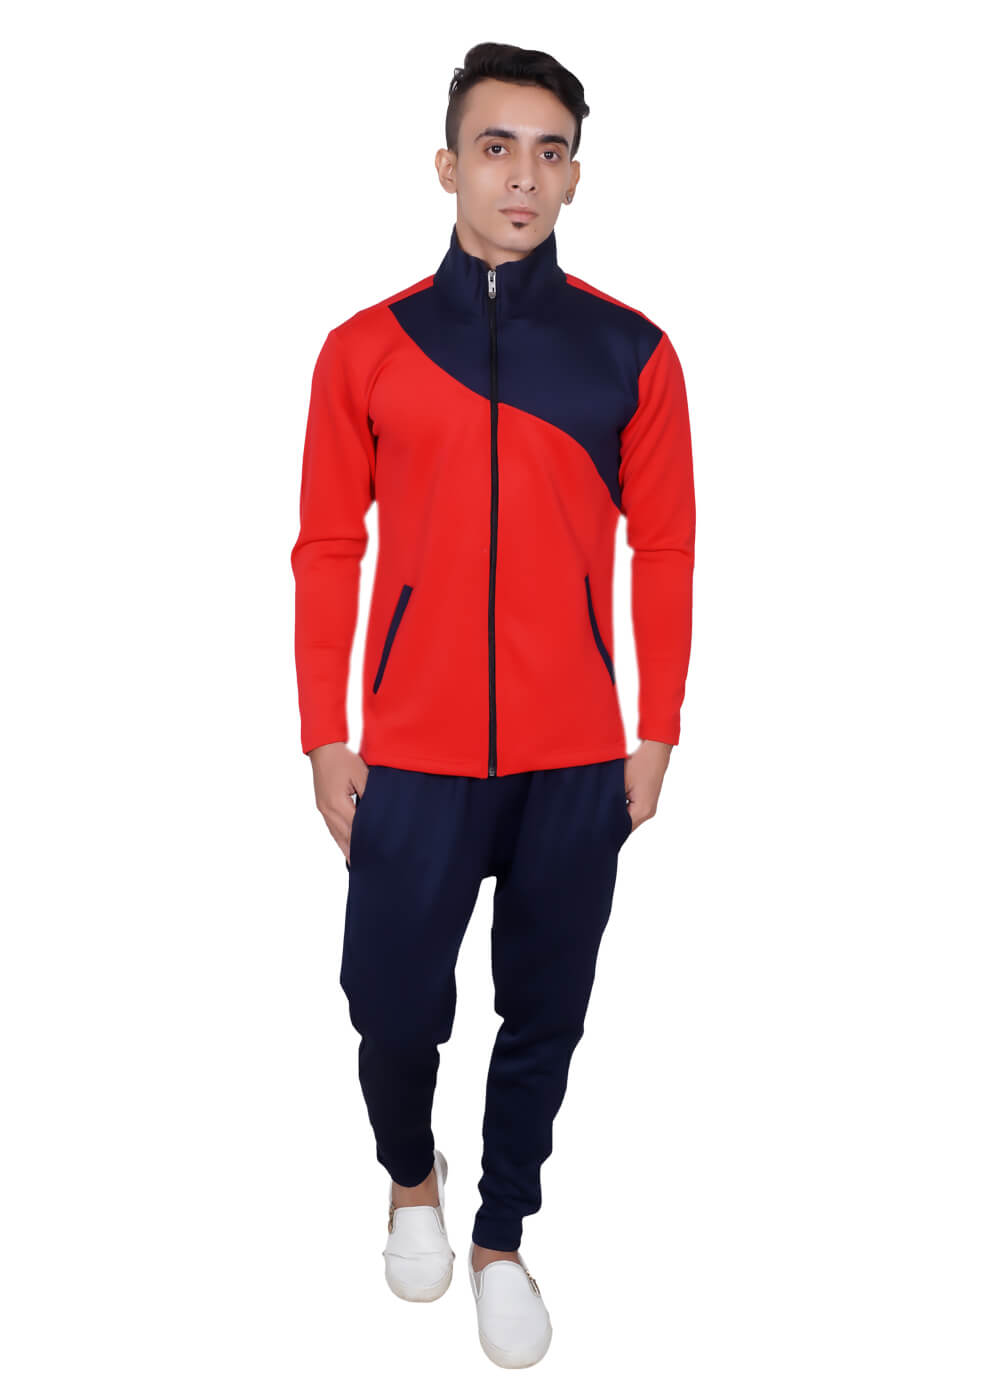 Cheap Tracksuits Manufacturers in Spain